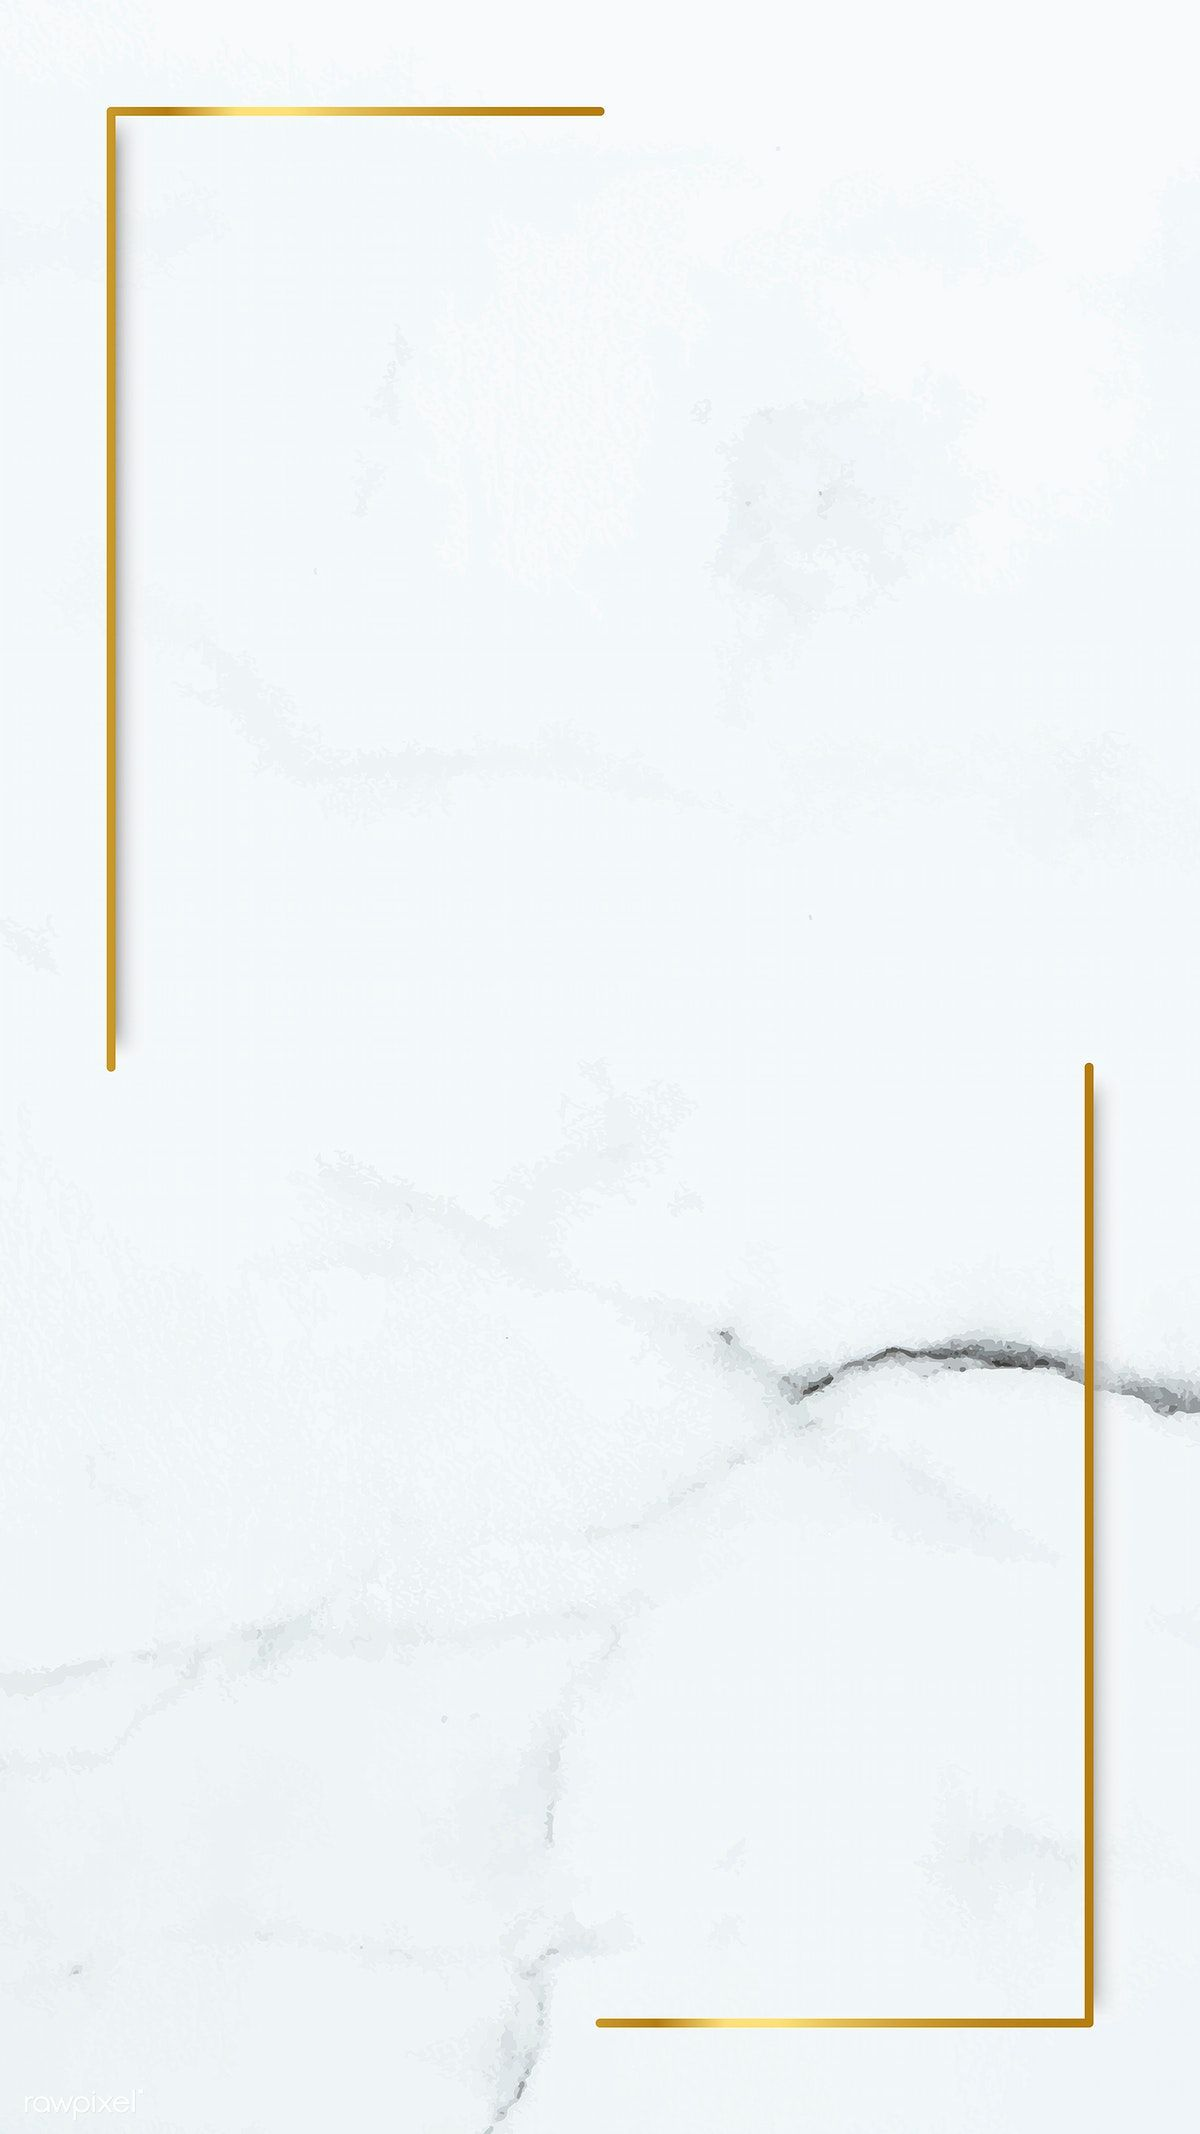 Download premium vector of Rectangle gold frame on white marble mobile